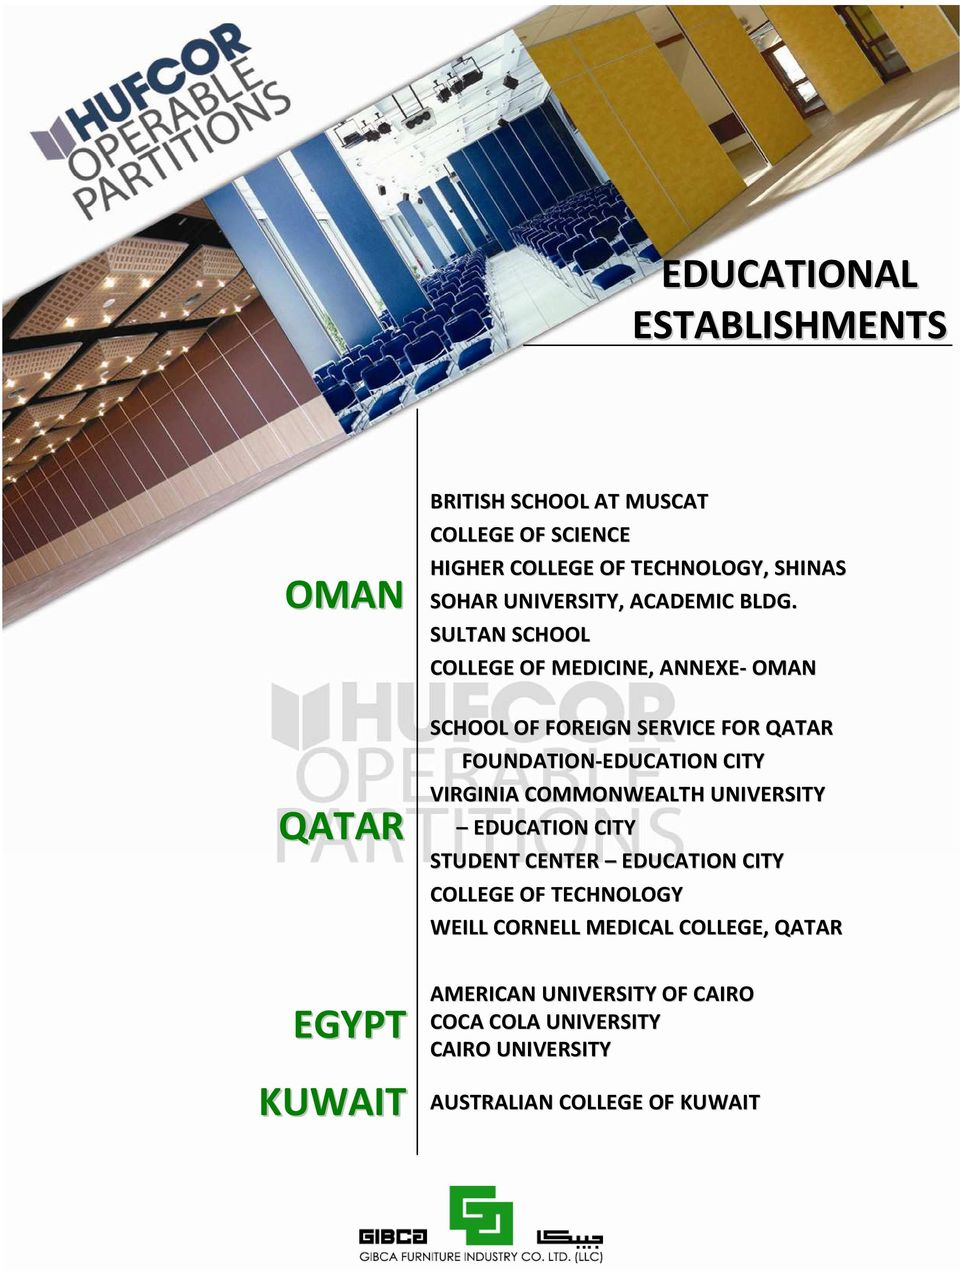 SULTAN SCHOOL COLLEGE OF MEDICINE, ANNEXE- OMAN SCHOOL OF FOREIGN SERVICE FOR QATAR FOUNDATION-EDUCATION CITY VIRGINIA